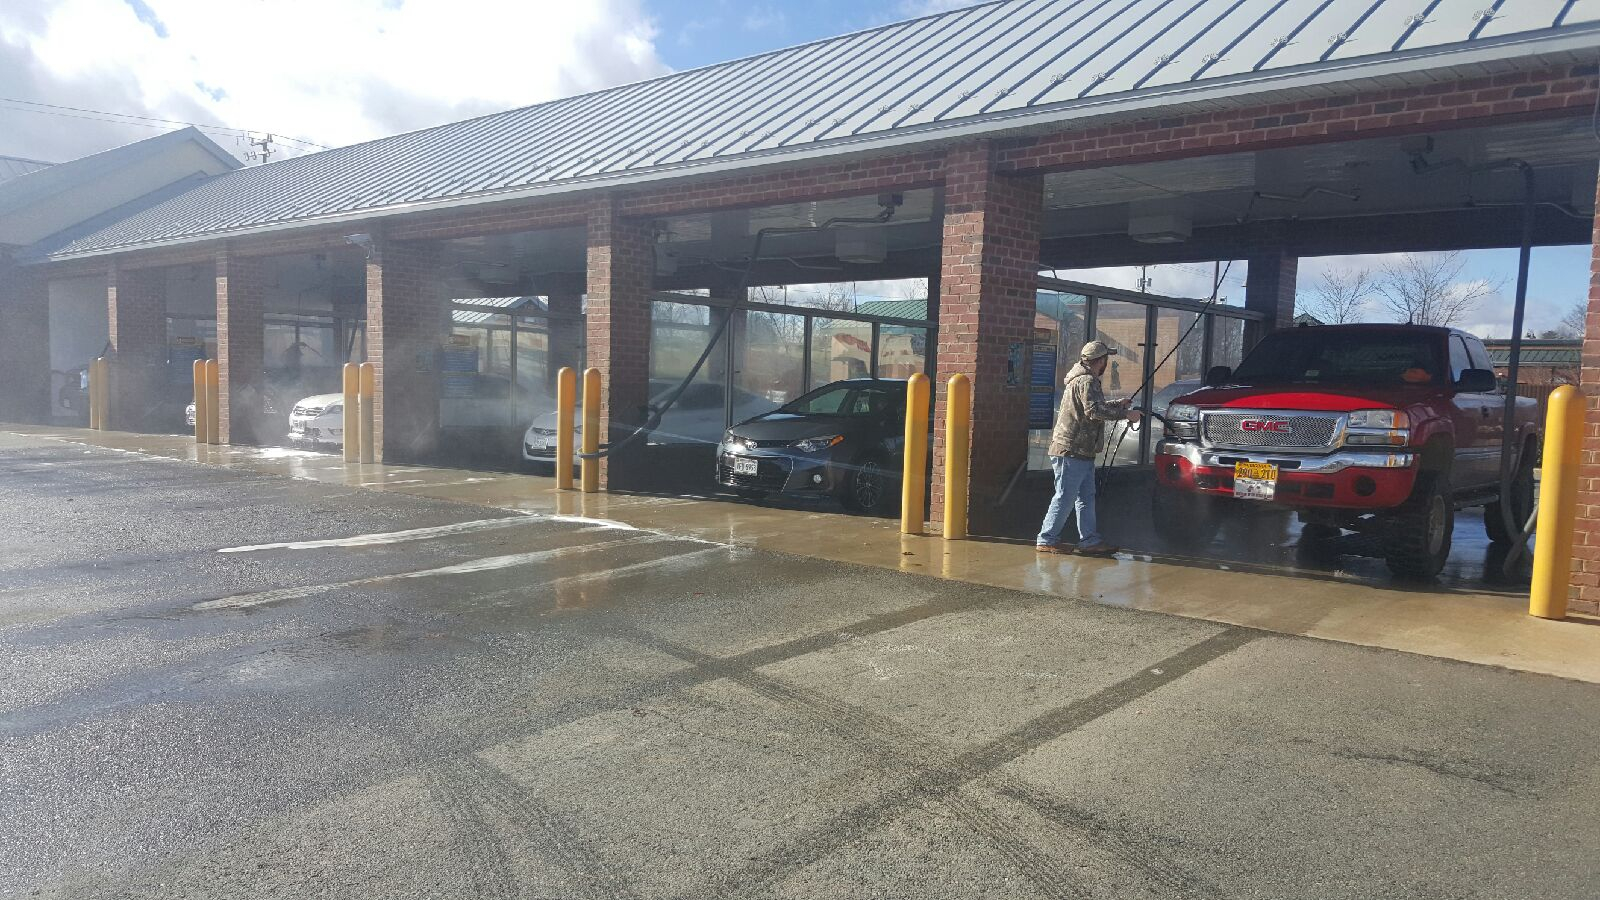 Diy Car Wash Near Me | Examples and Forms